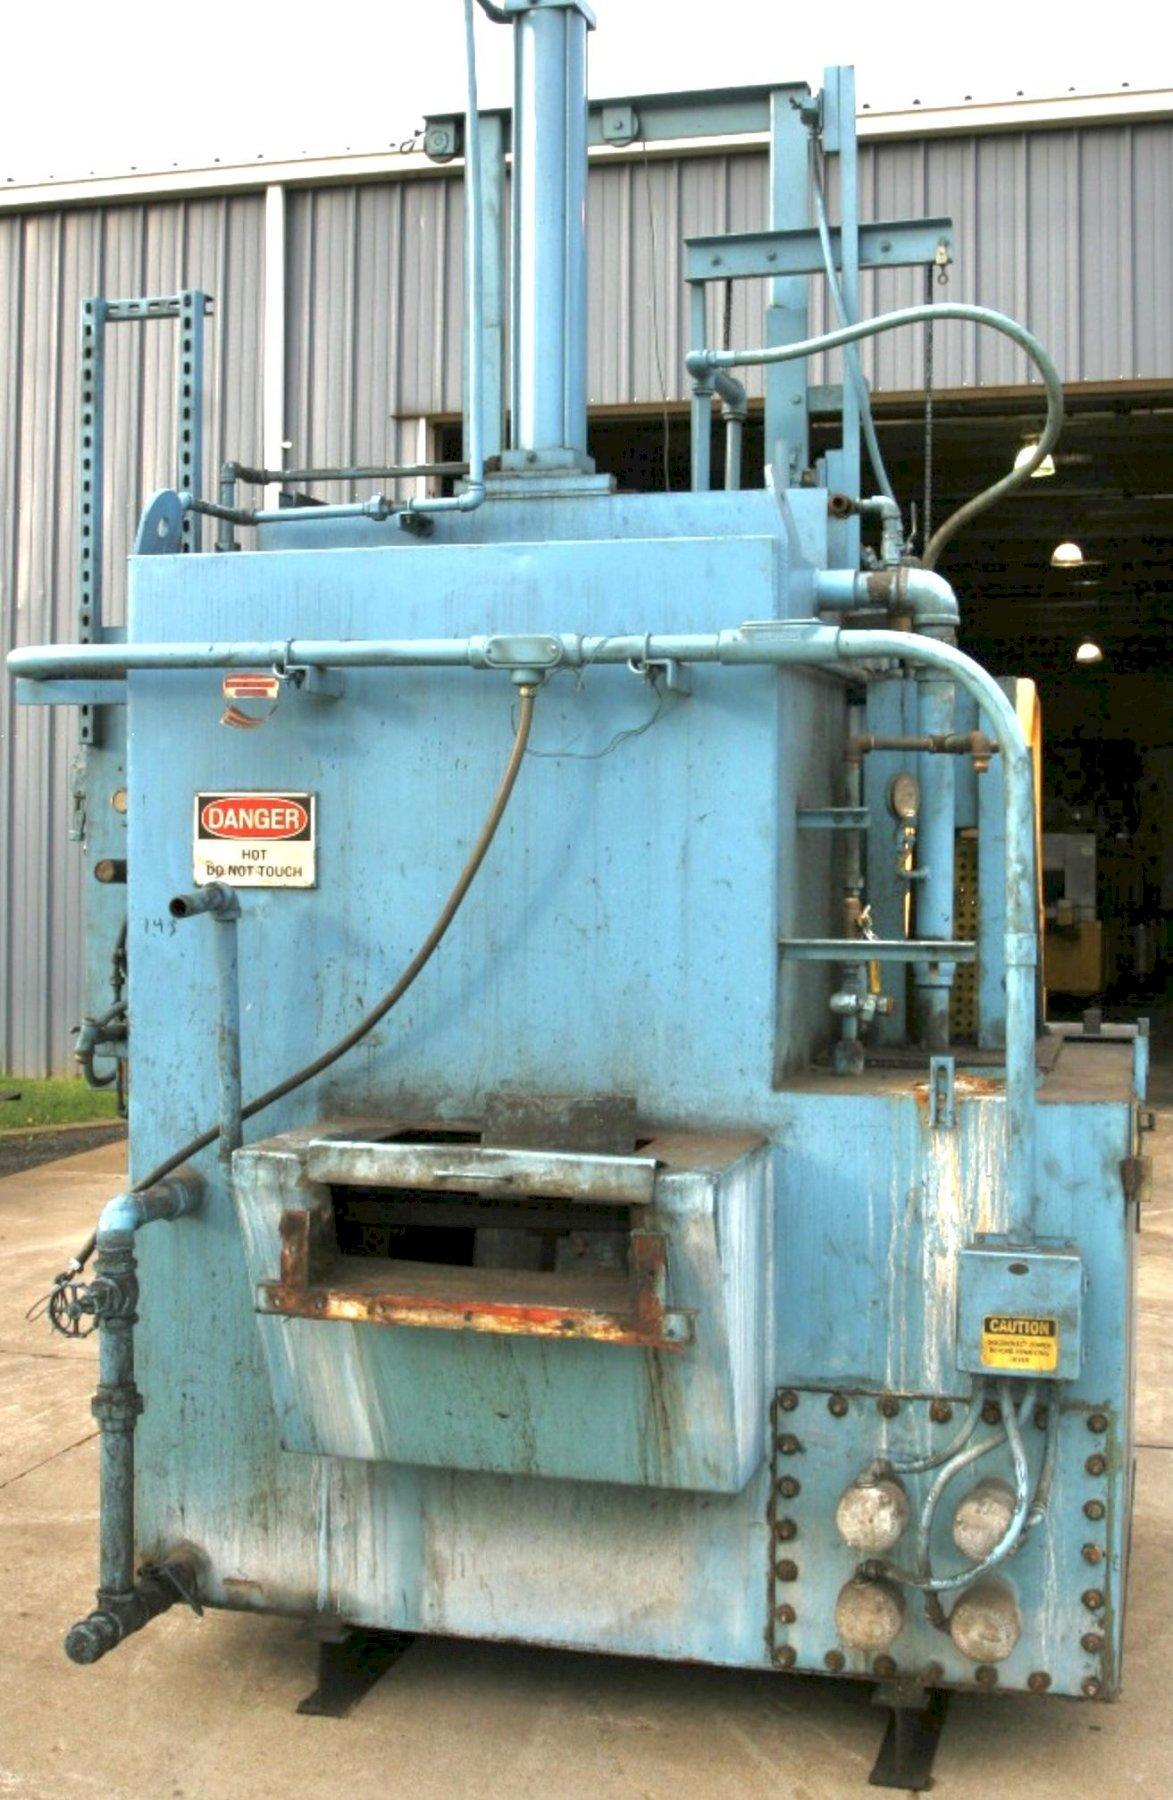 Parts washer